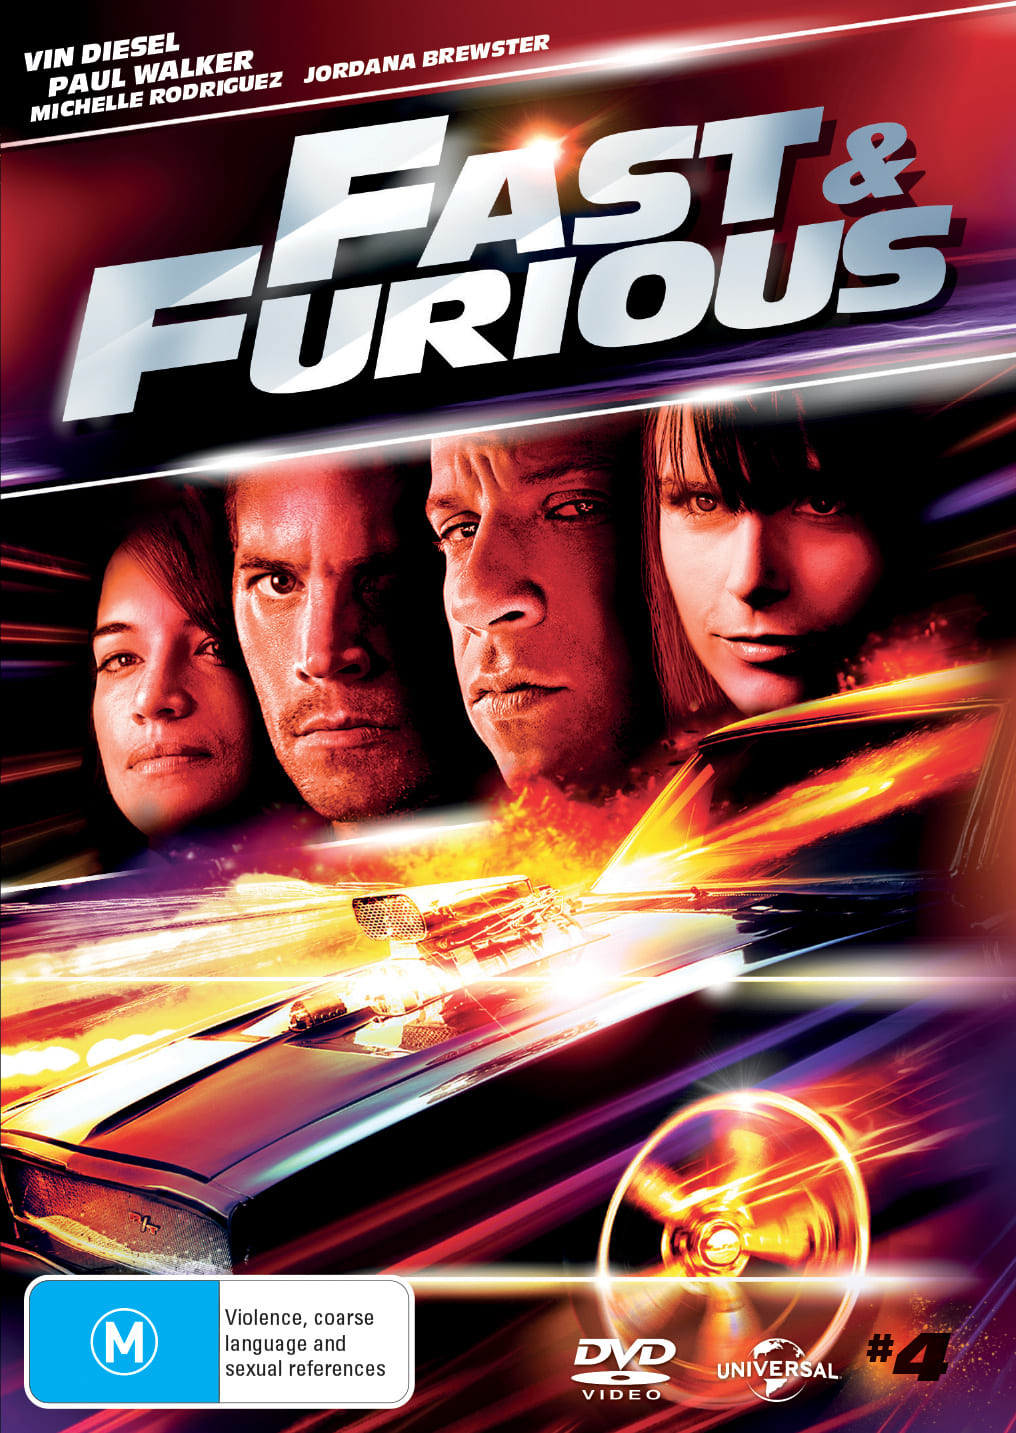 The Fast & the Furious 4 [DVD]